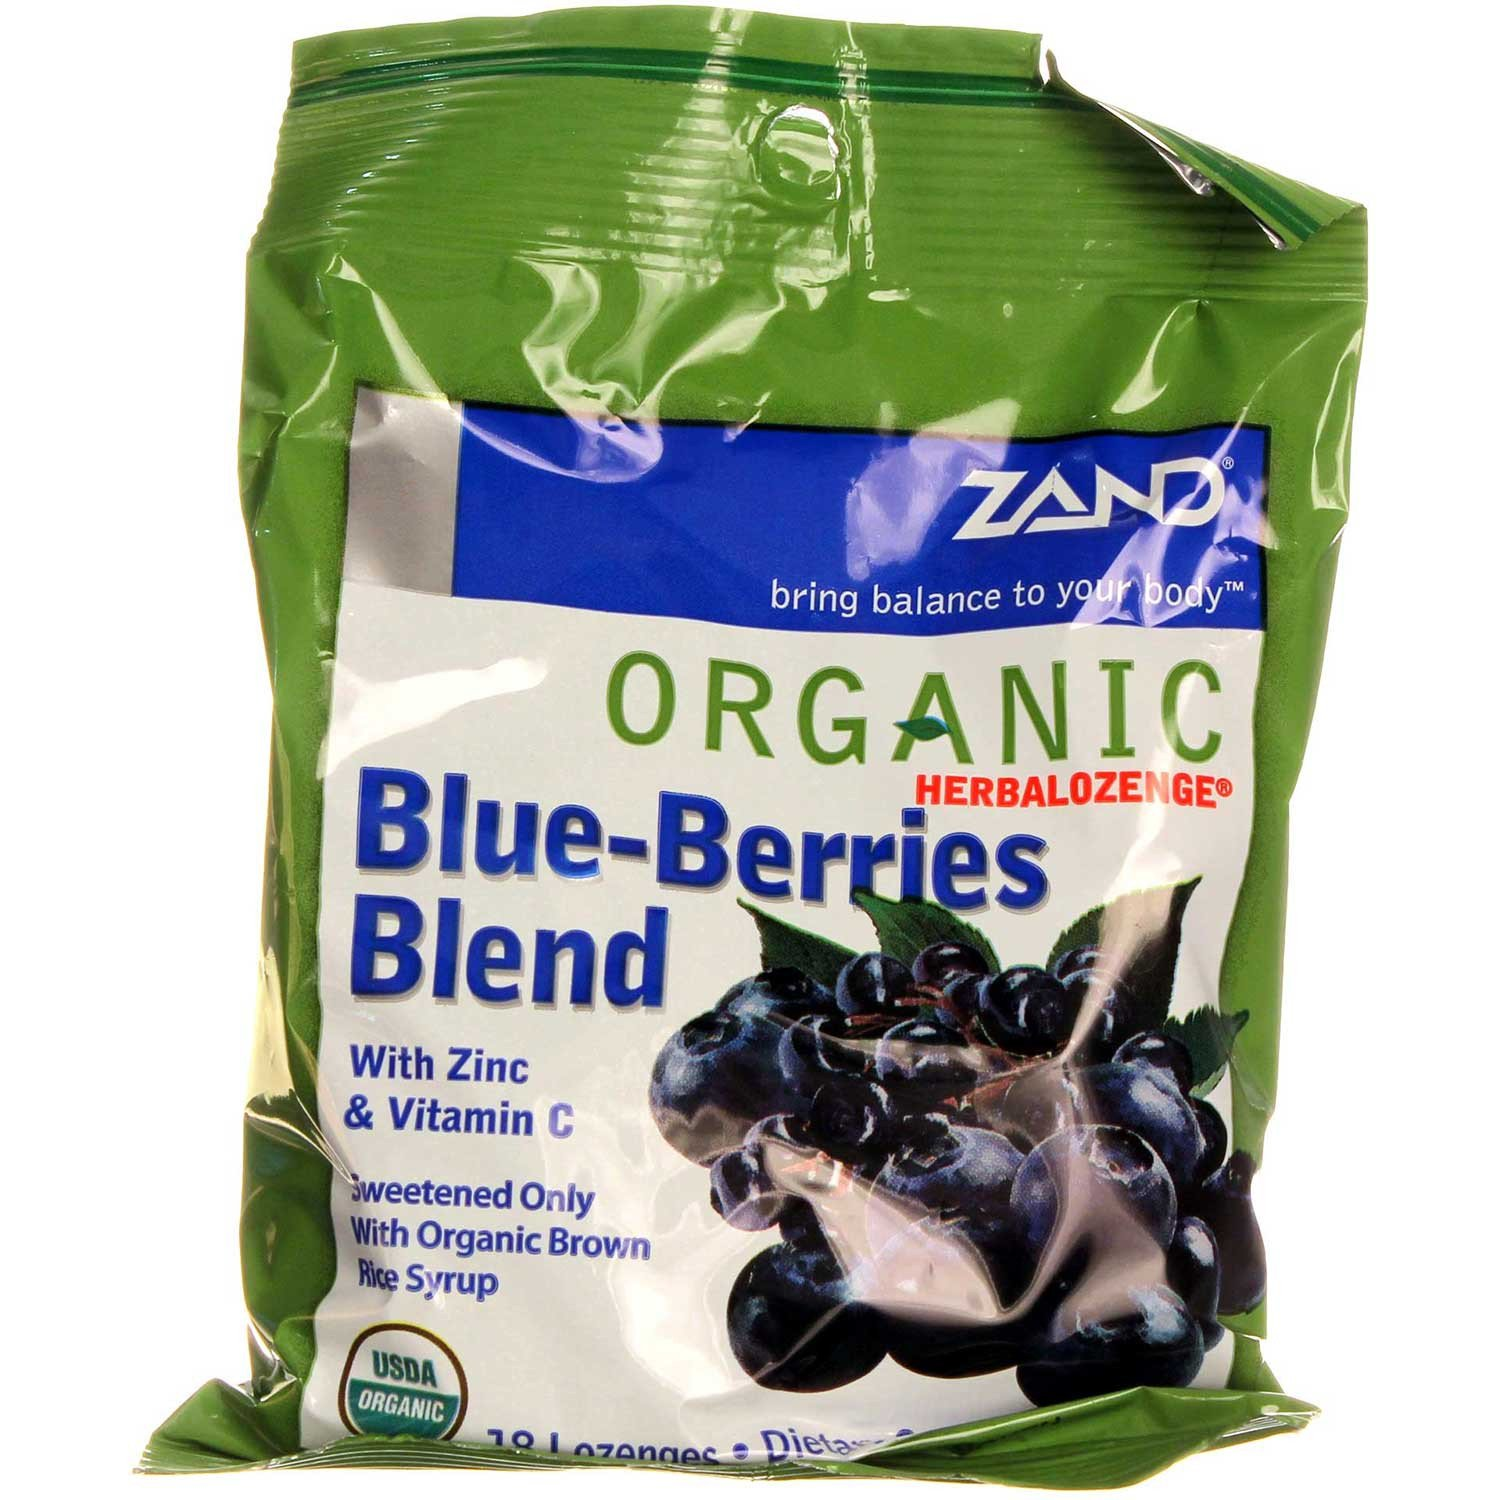 Zand Organic HerbaLozenge Blue-Berries, 18 ct